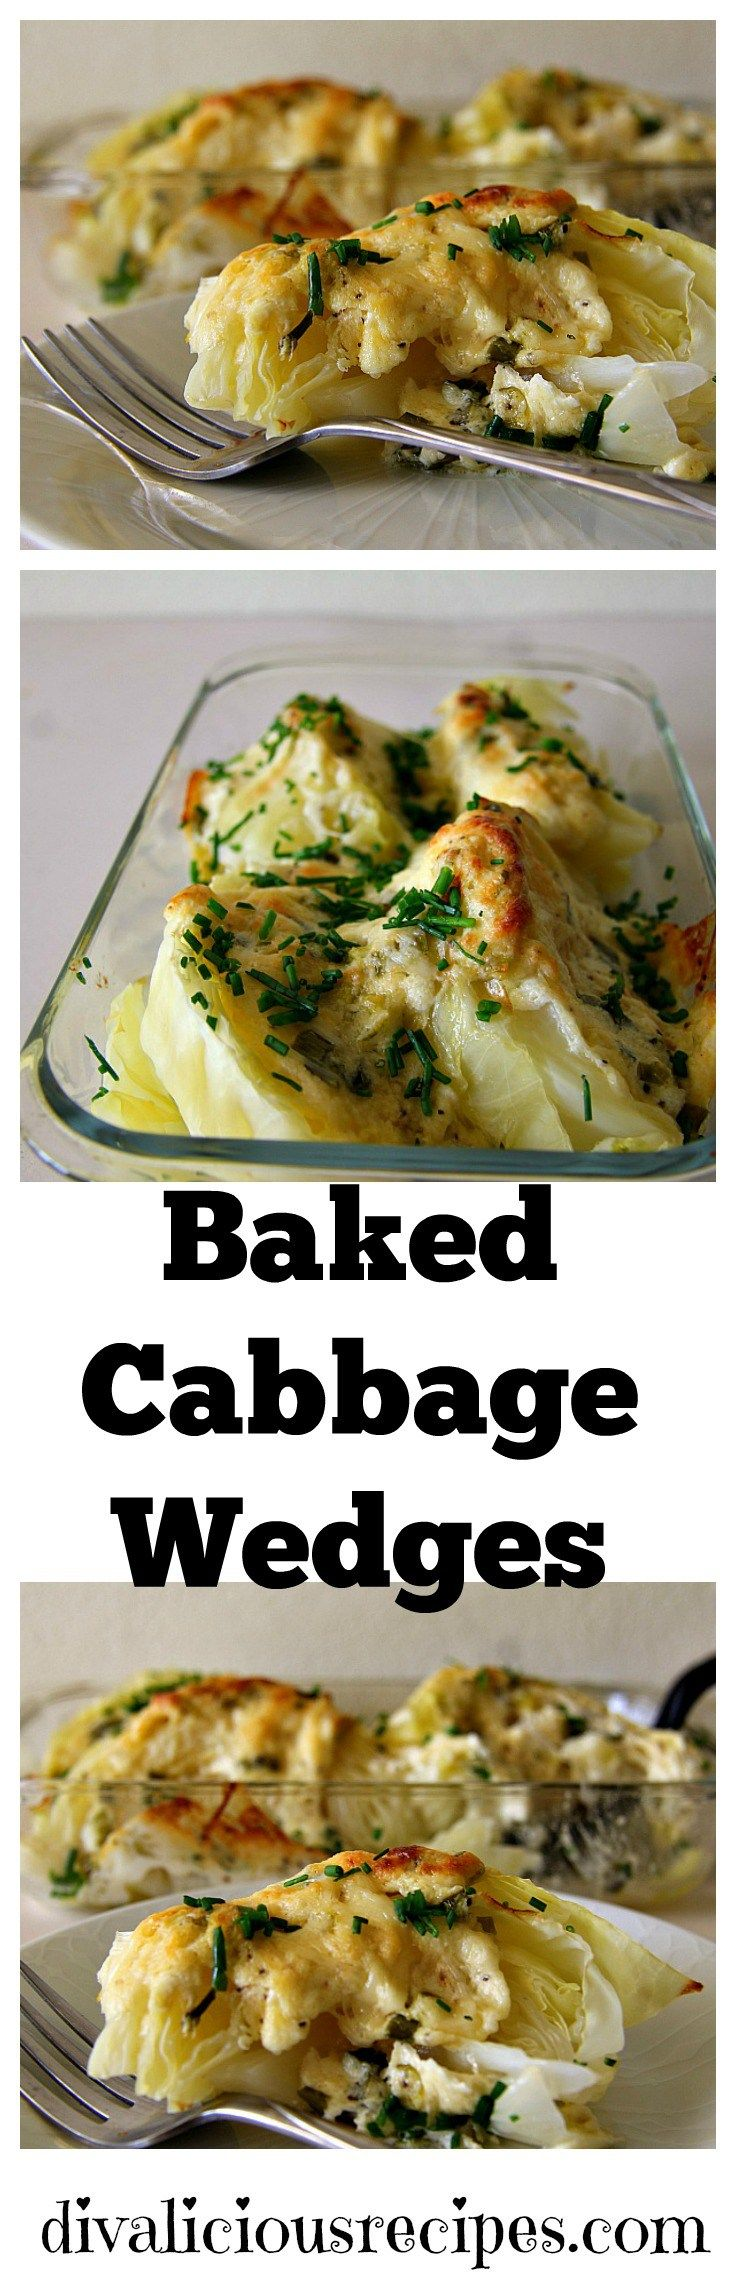 Cabbage wedges are covered with a cheese sauce and baked in the oven for a delicious cheesy cabbage casserole.  Recipe: http://divaliciousrecipes.com/2017/01/25/baked-cabbage-wedges/